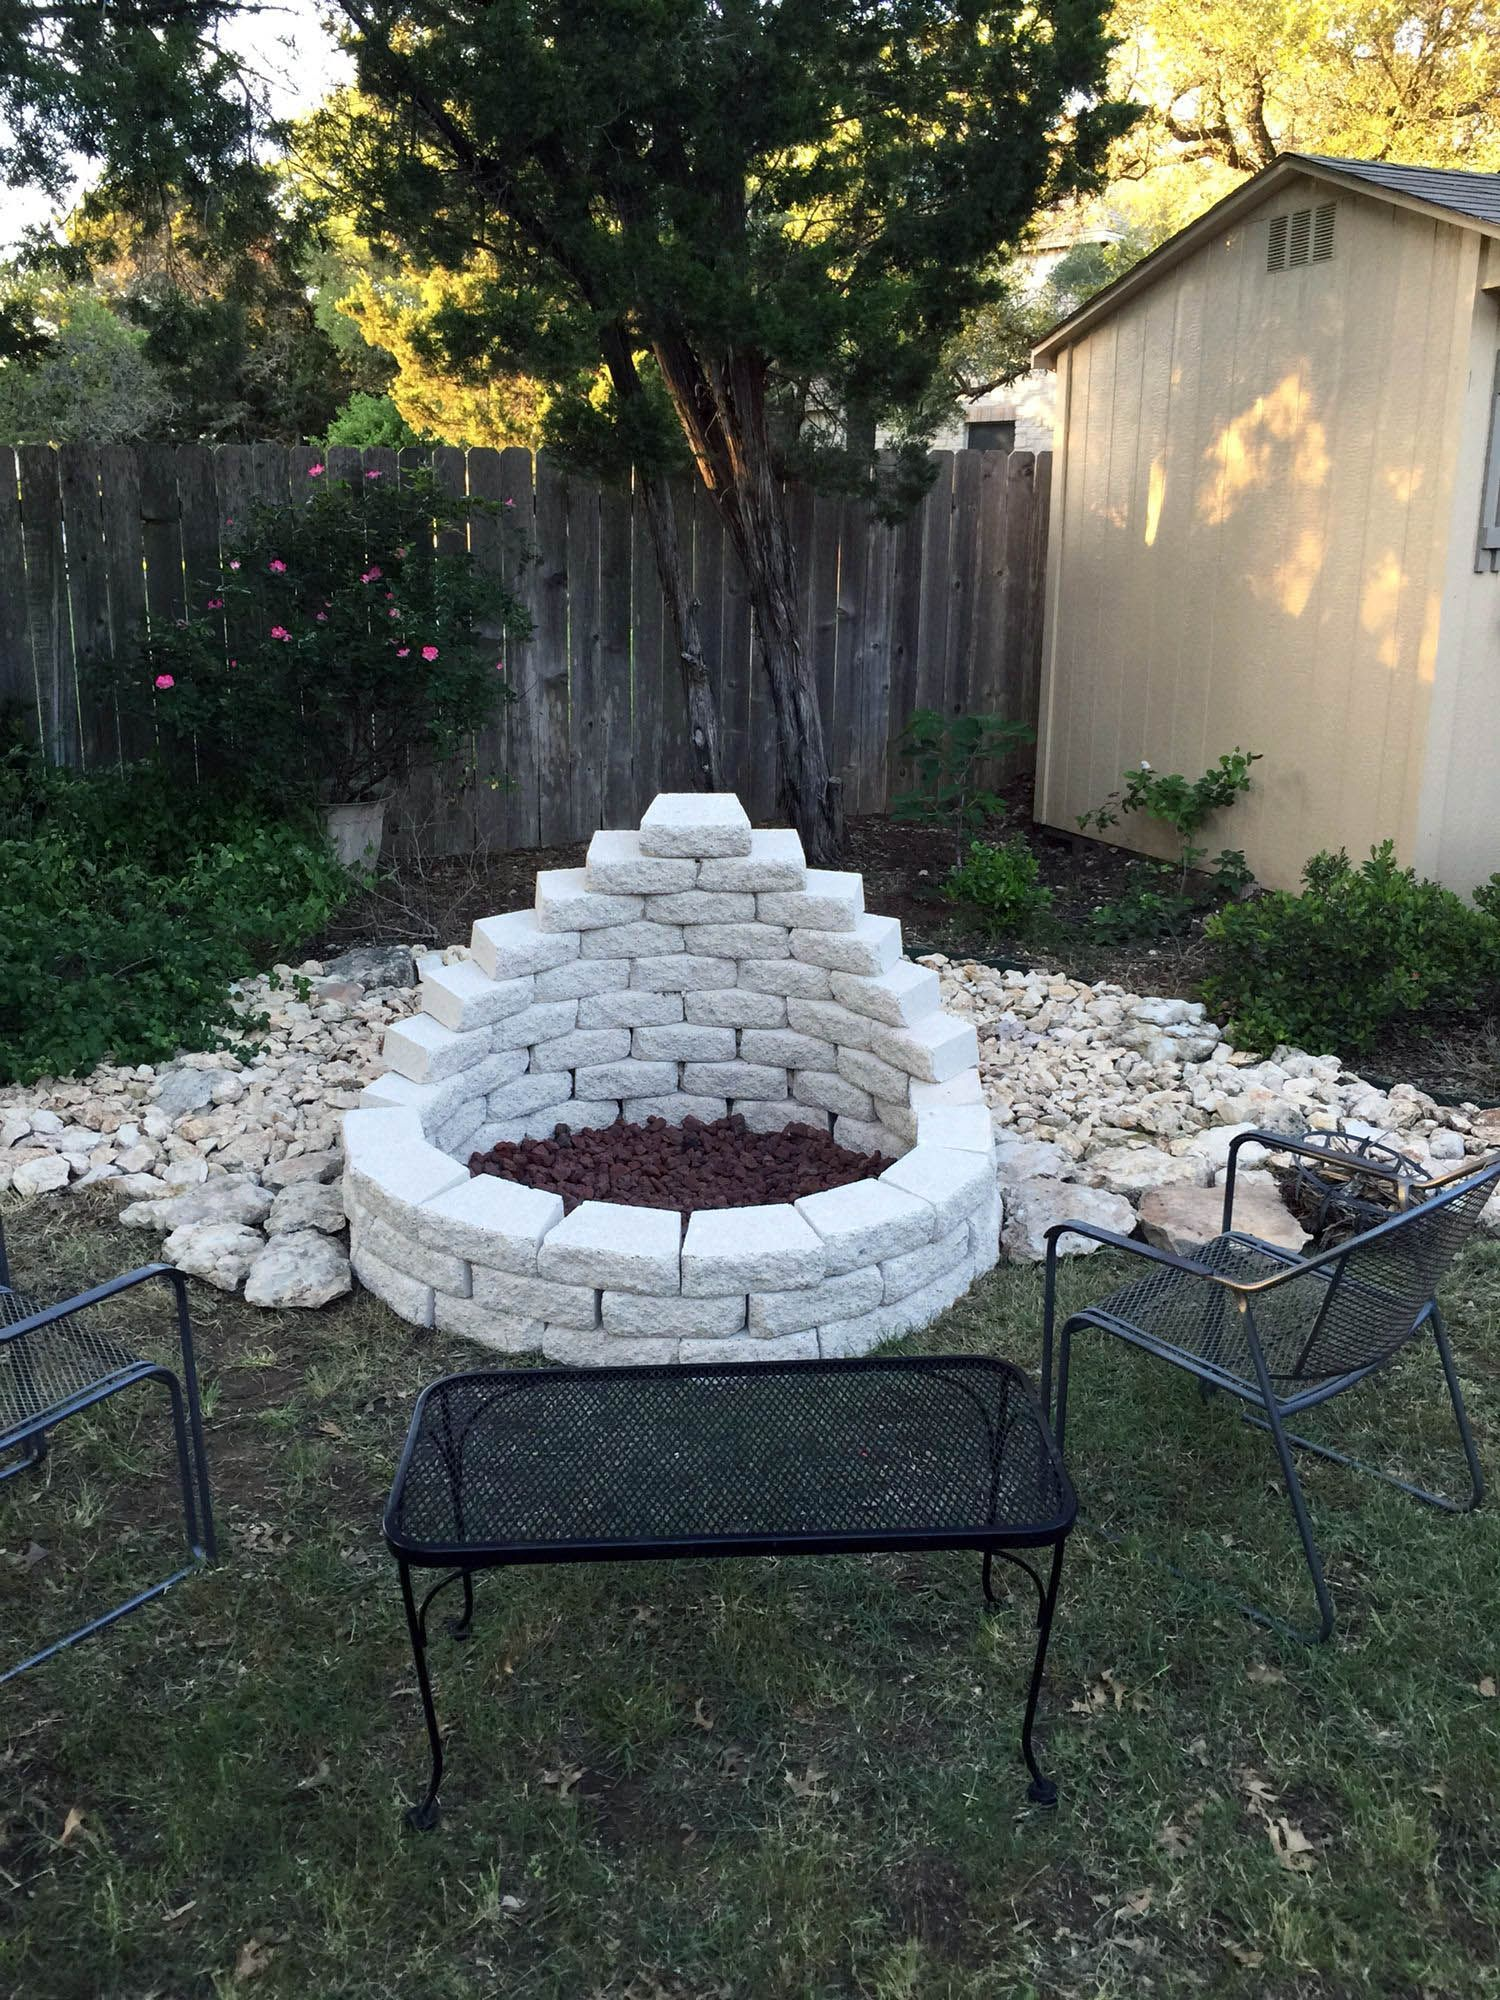 27 Awesome Diy Firepit Ideas For Your Yard Diyfirepit Outside Fire Pits Cool Fire Pits Outdoor Fire Pit Designs